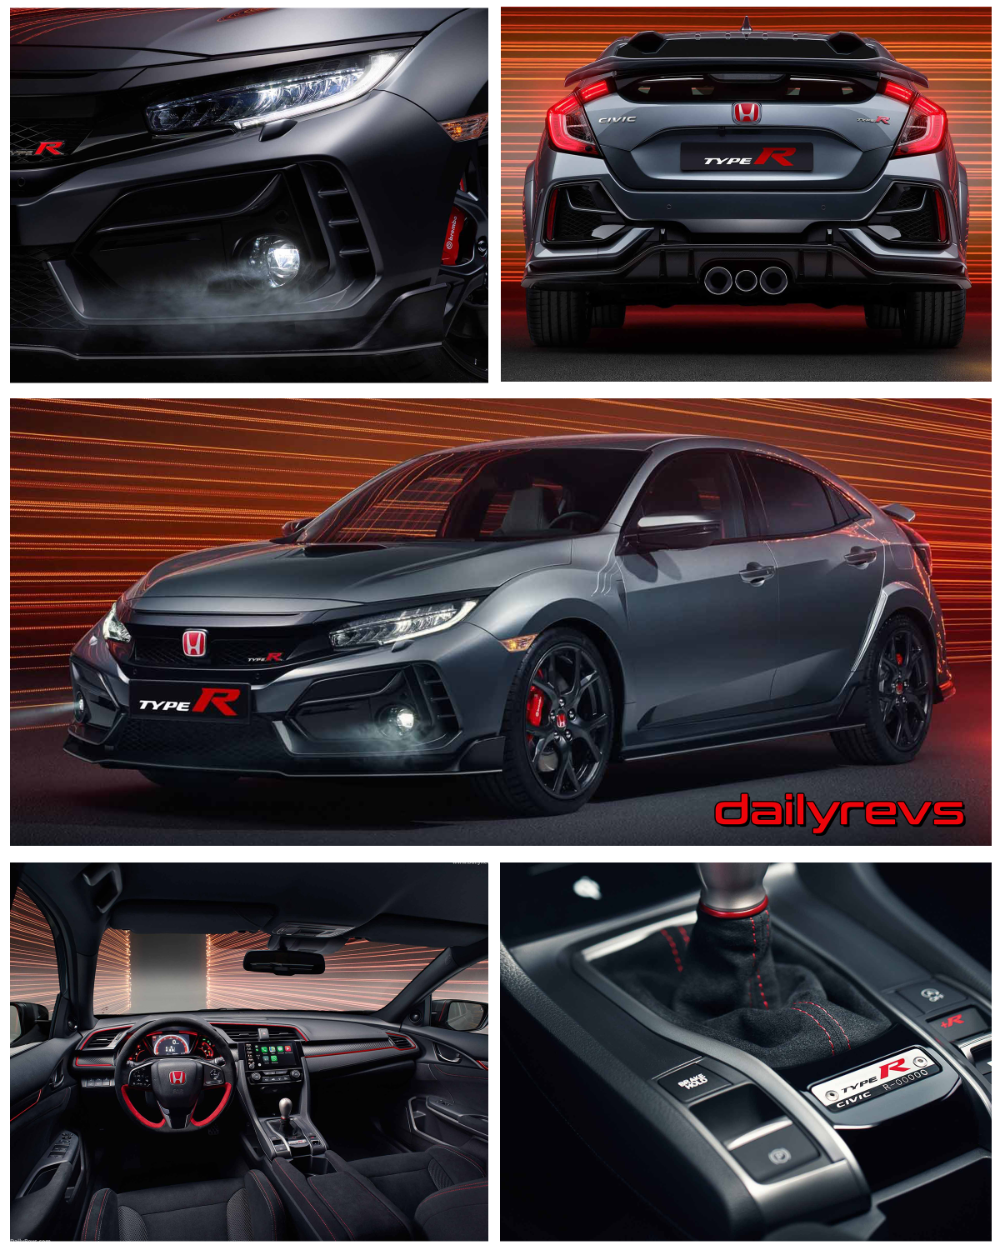 2021 Honda Civic Type R Sport Line Dailyrevs Com Honda Civic Type R Honda Civic Honda Civic Sport